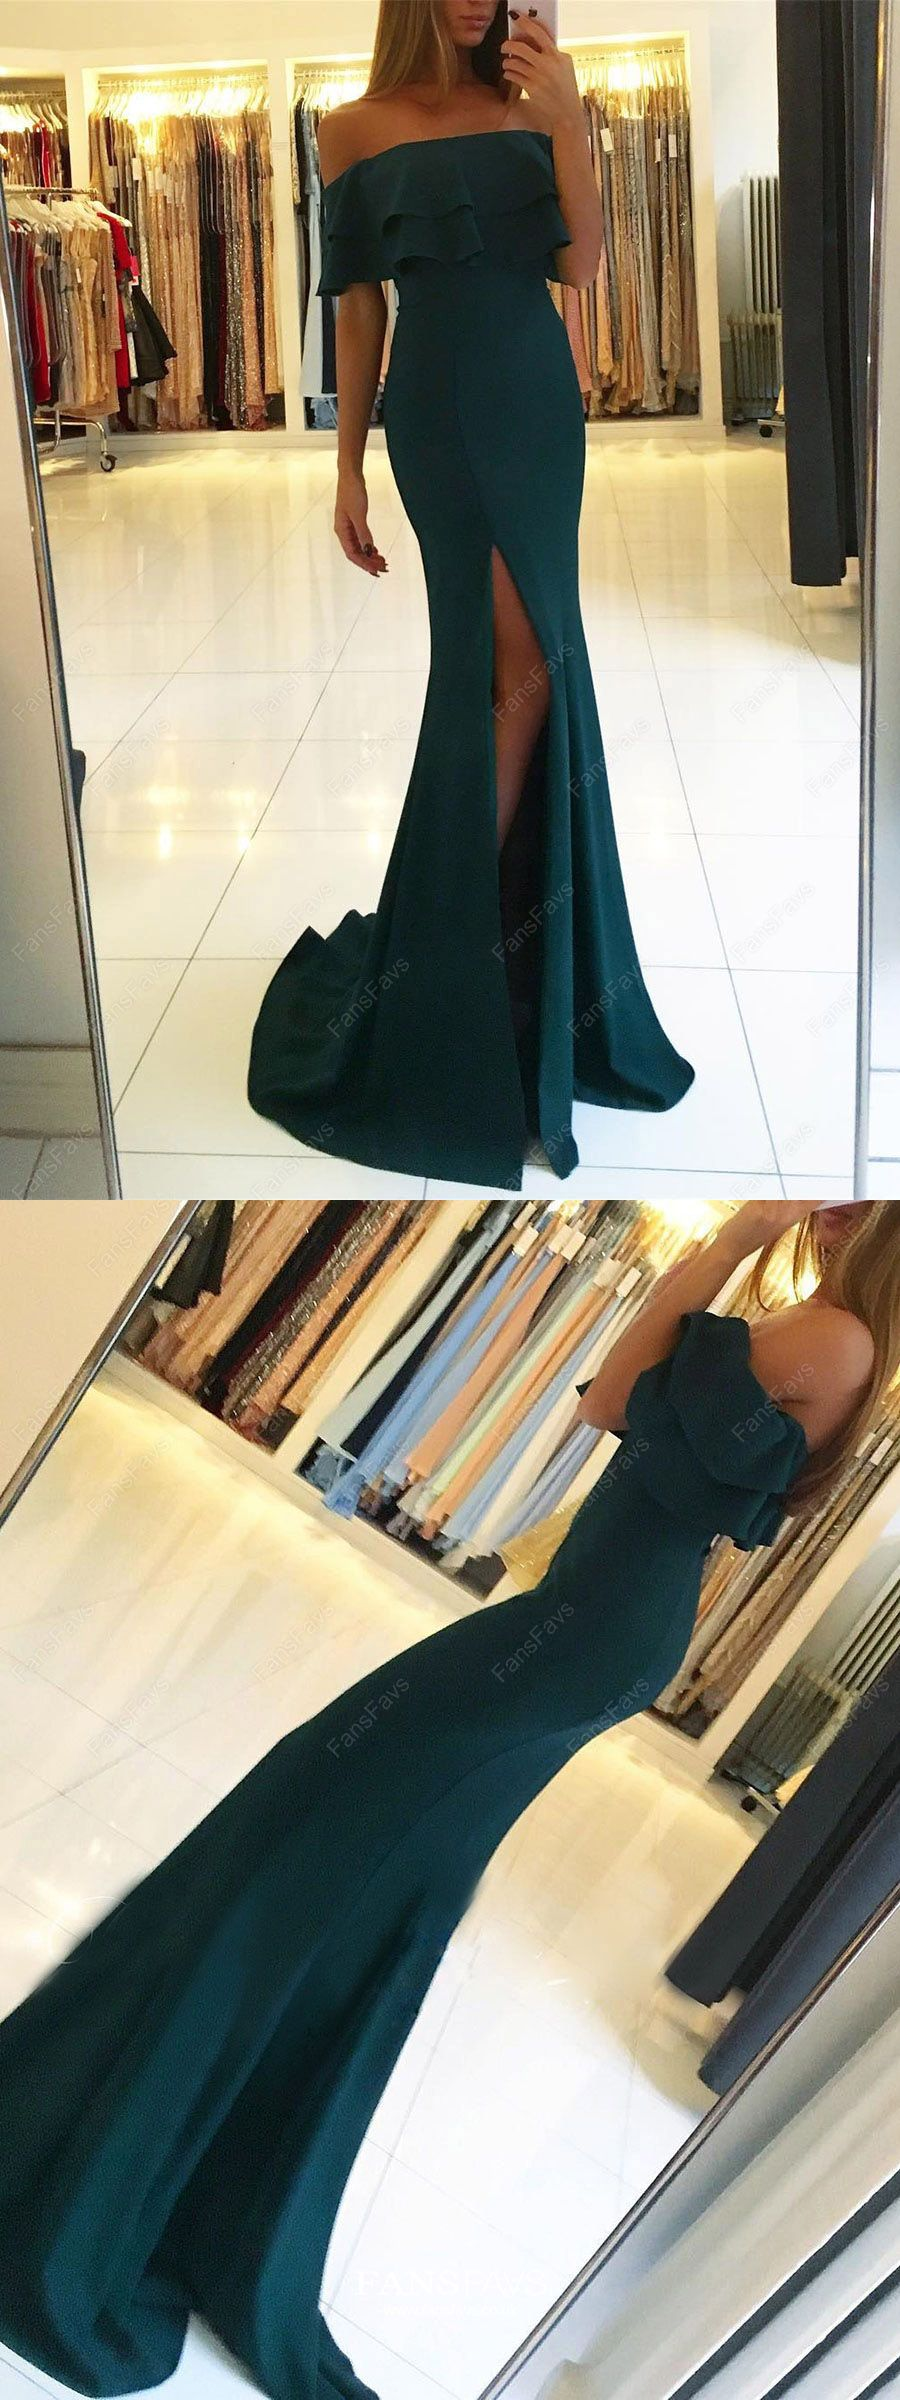 Green prom dresses mermaid long prom dresses with slit offthe